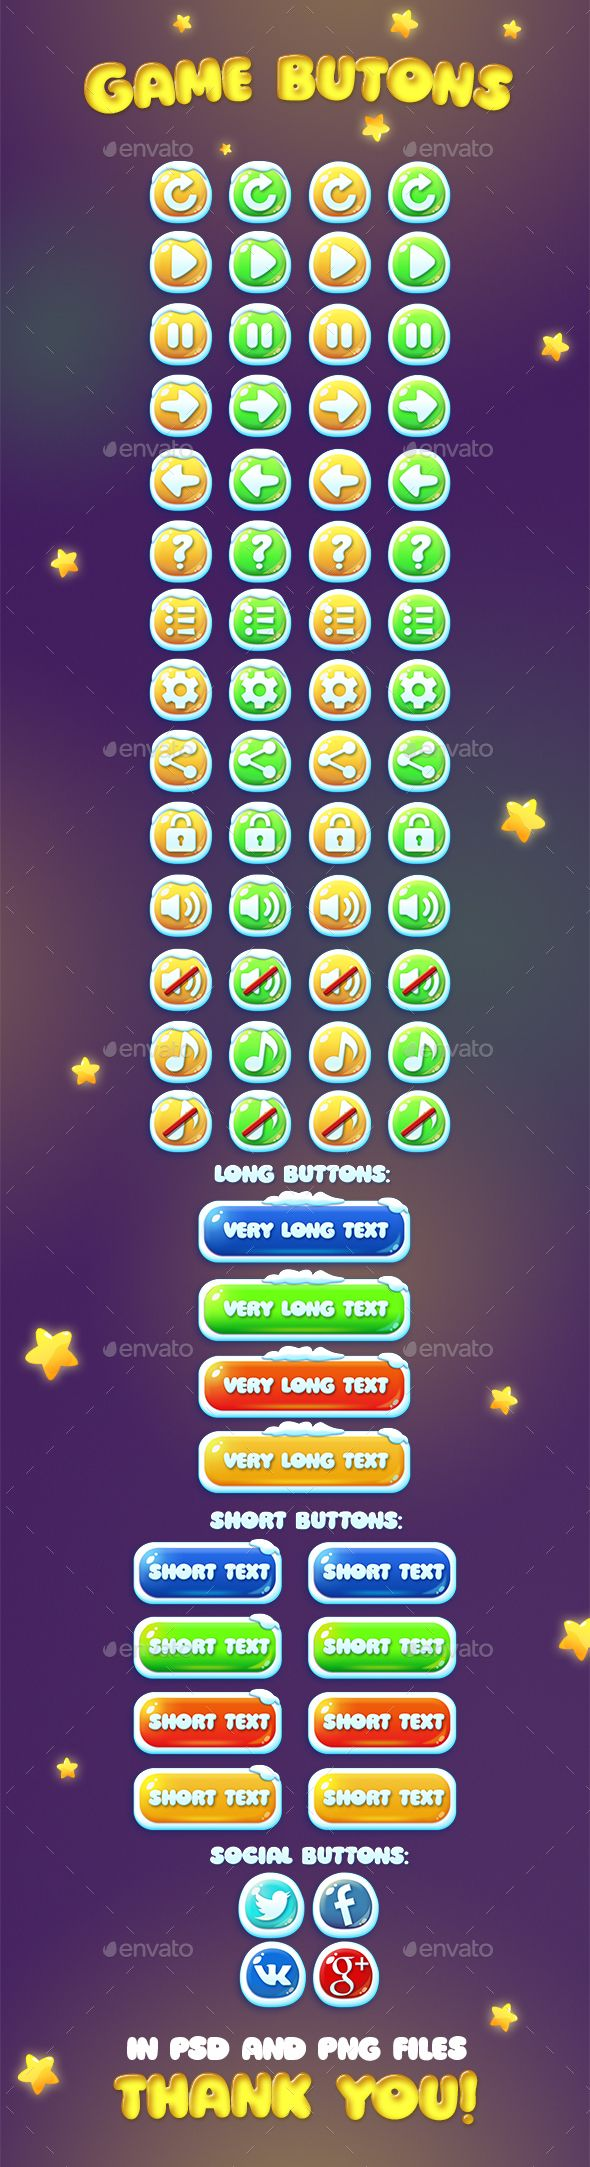 Chistmas and Usual Game Buttons Set PSD. Download here: https://graphicriver.net/item/chistmas-and-usual-game-buttons-set/13989366?ref=ksioks